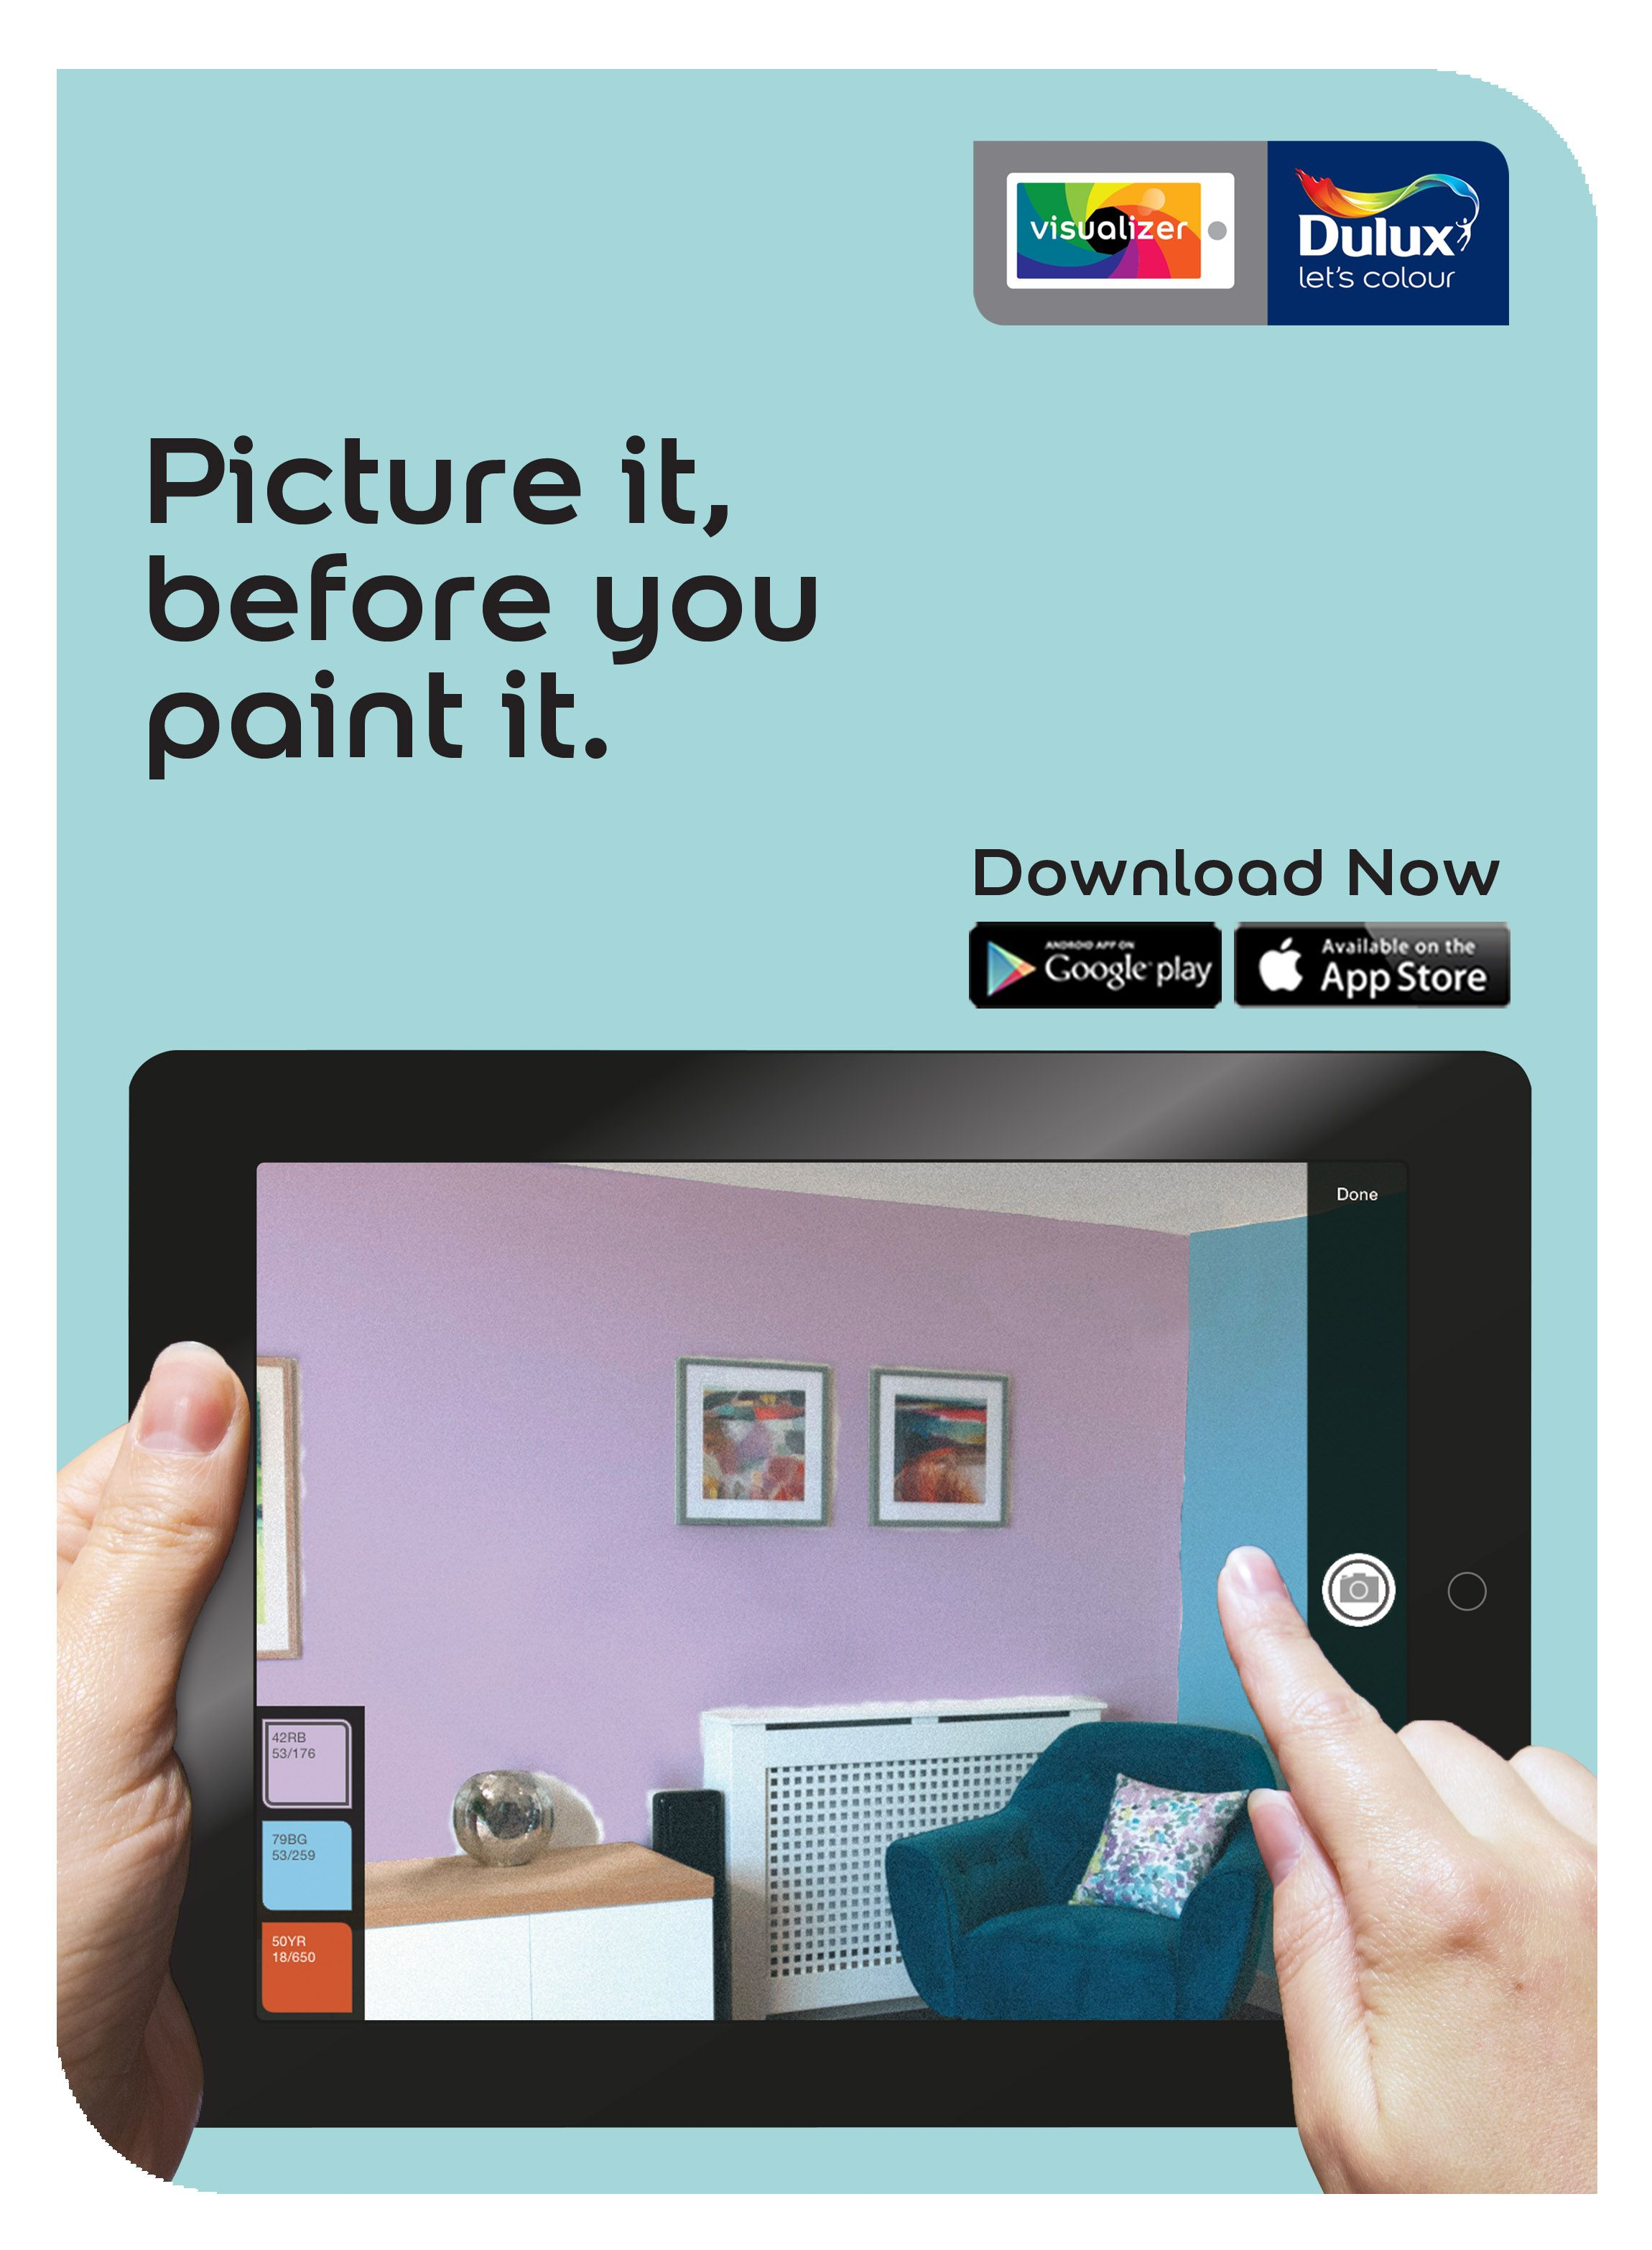 Did You Know That The Visualizer App Allows You To Visualize Your Room In Different Colours With Just A Few Taps You Ca Visualizer App Dulux Colorful Pictures